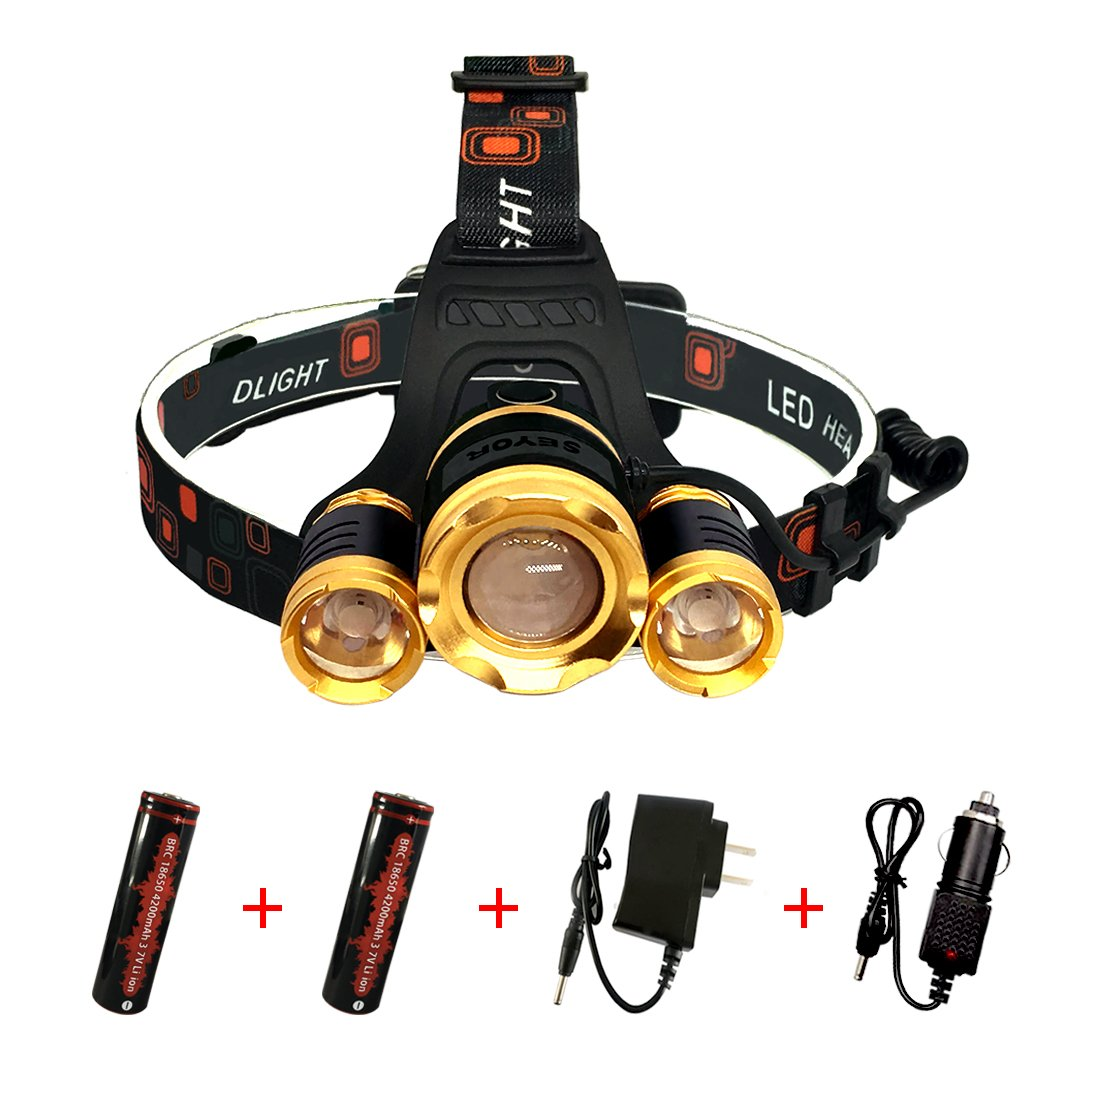 SEYOR Ultra Bright LED Headlamp 4 Mode Zoomable Focus Headlight with Rechargeable 18650 Battery(X2) and Charger(x2) for Camping Fishing Riding Hiking Reading